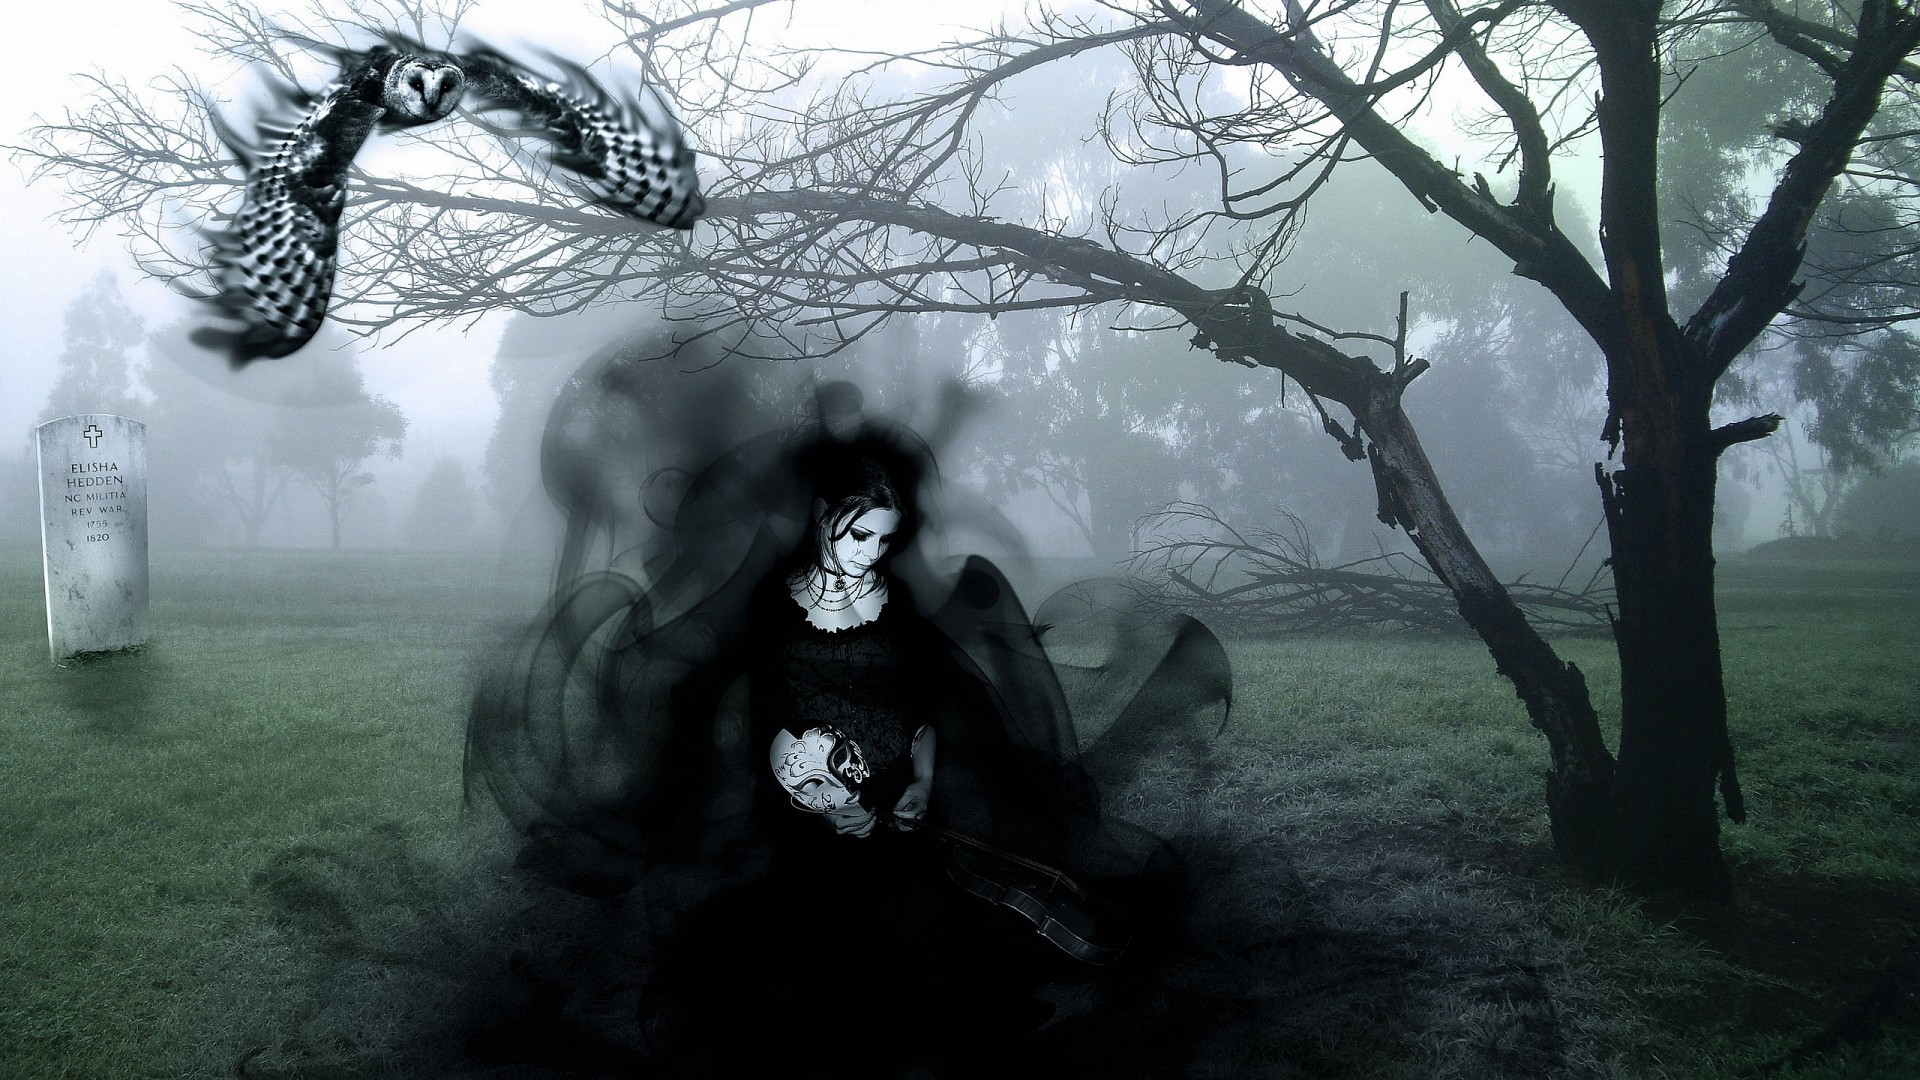 Res: 1920x1080, Download now full hd wallpaper ghost lady gothic dark fog cemetery ...